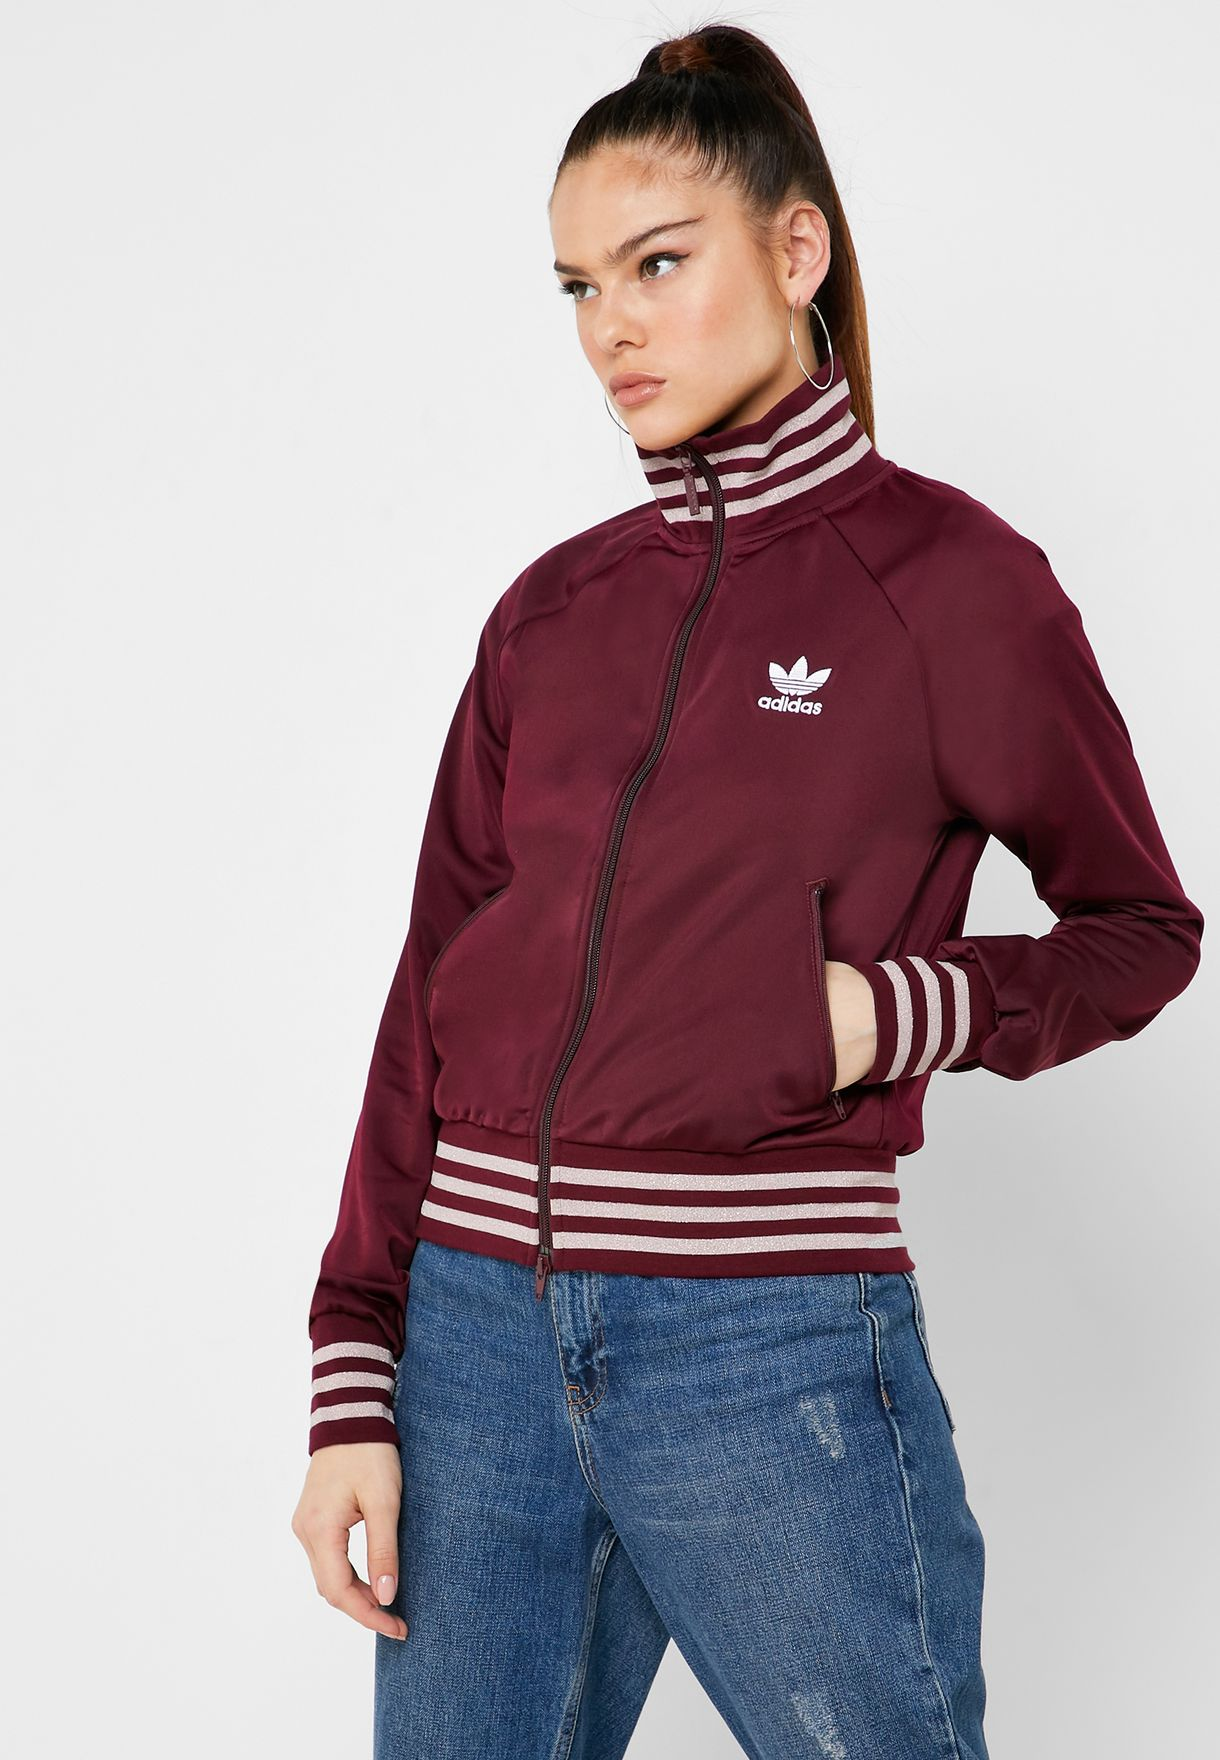 Simple Adidas Track Jacket Originals Black | Men Adidas